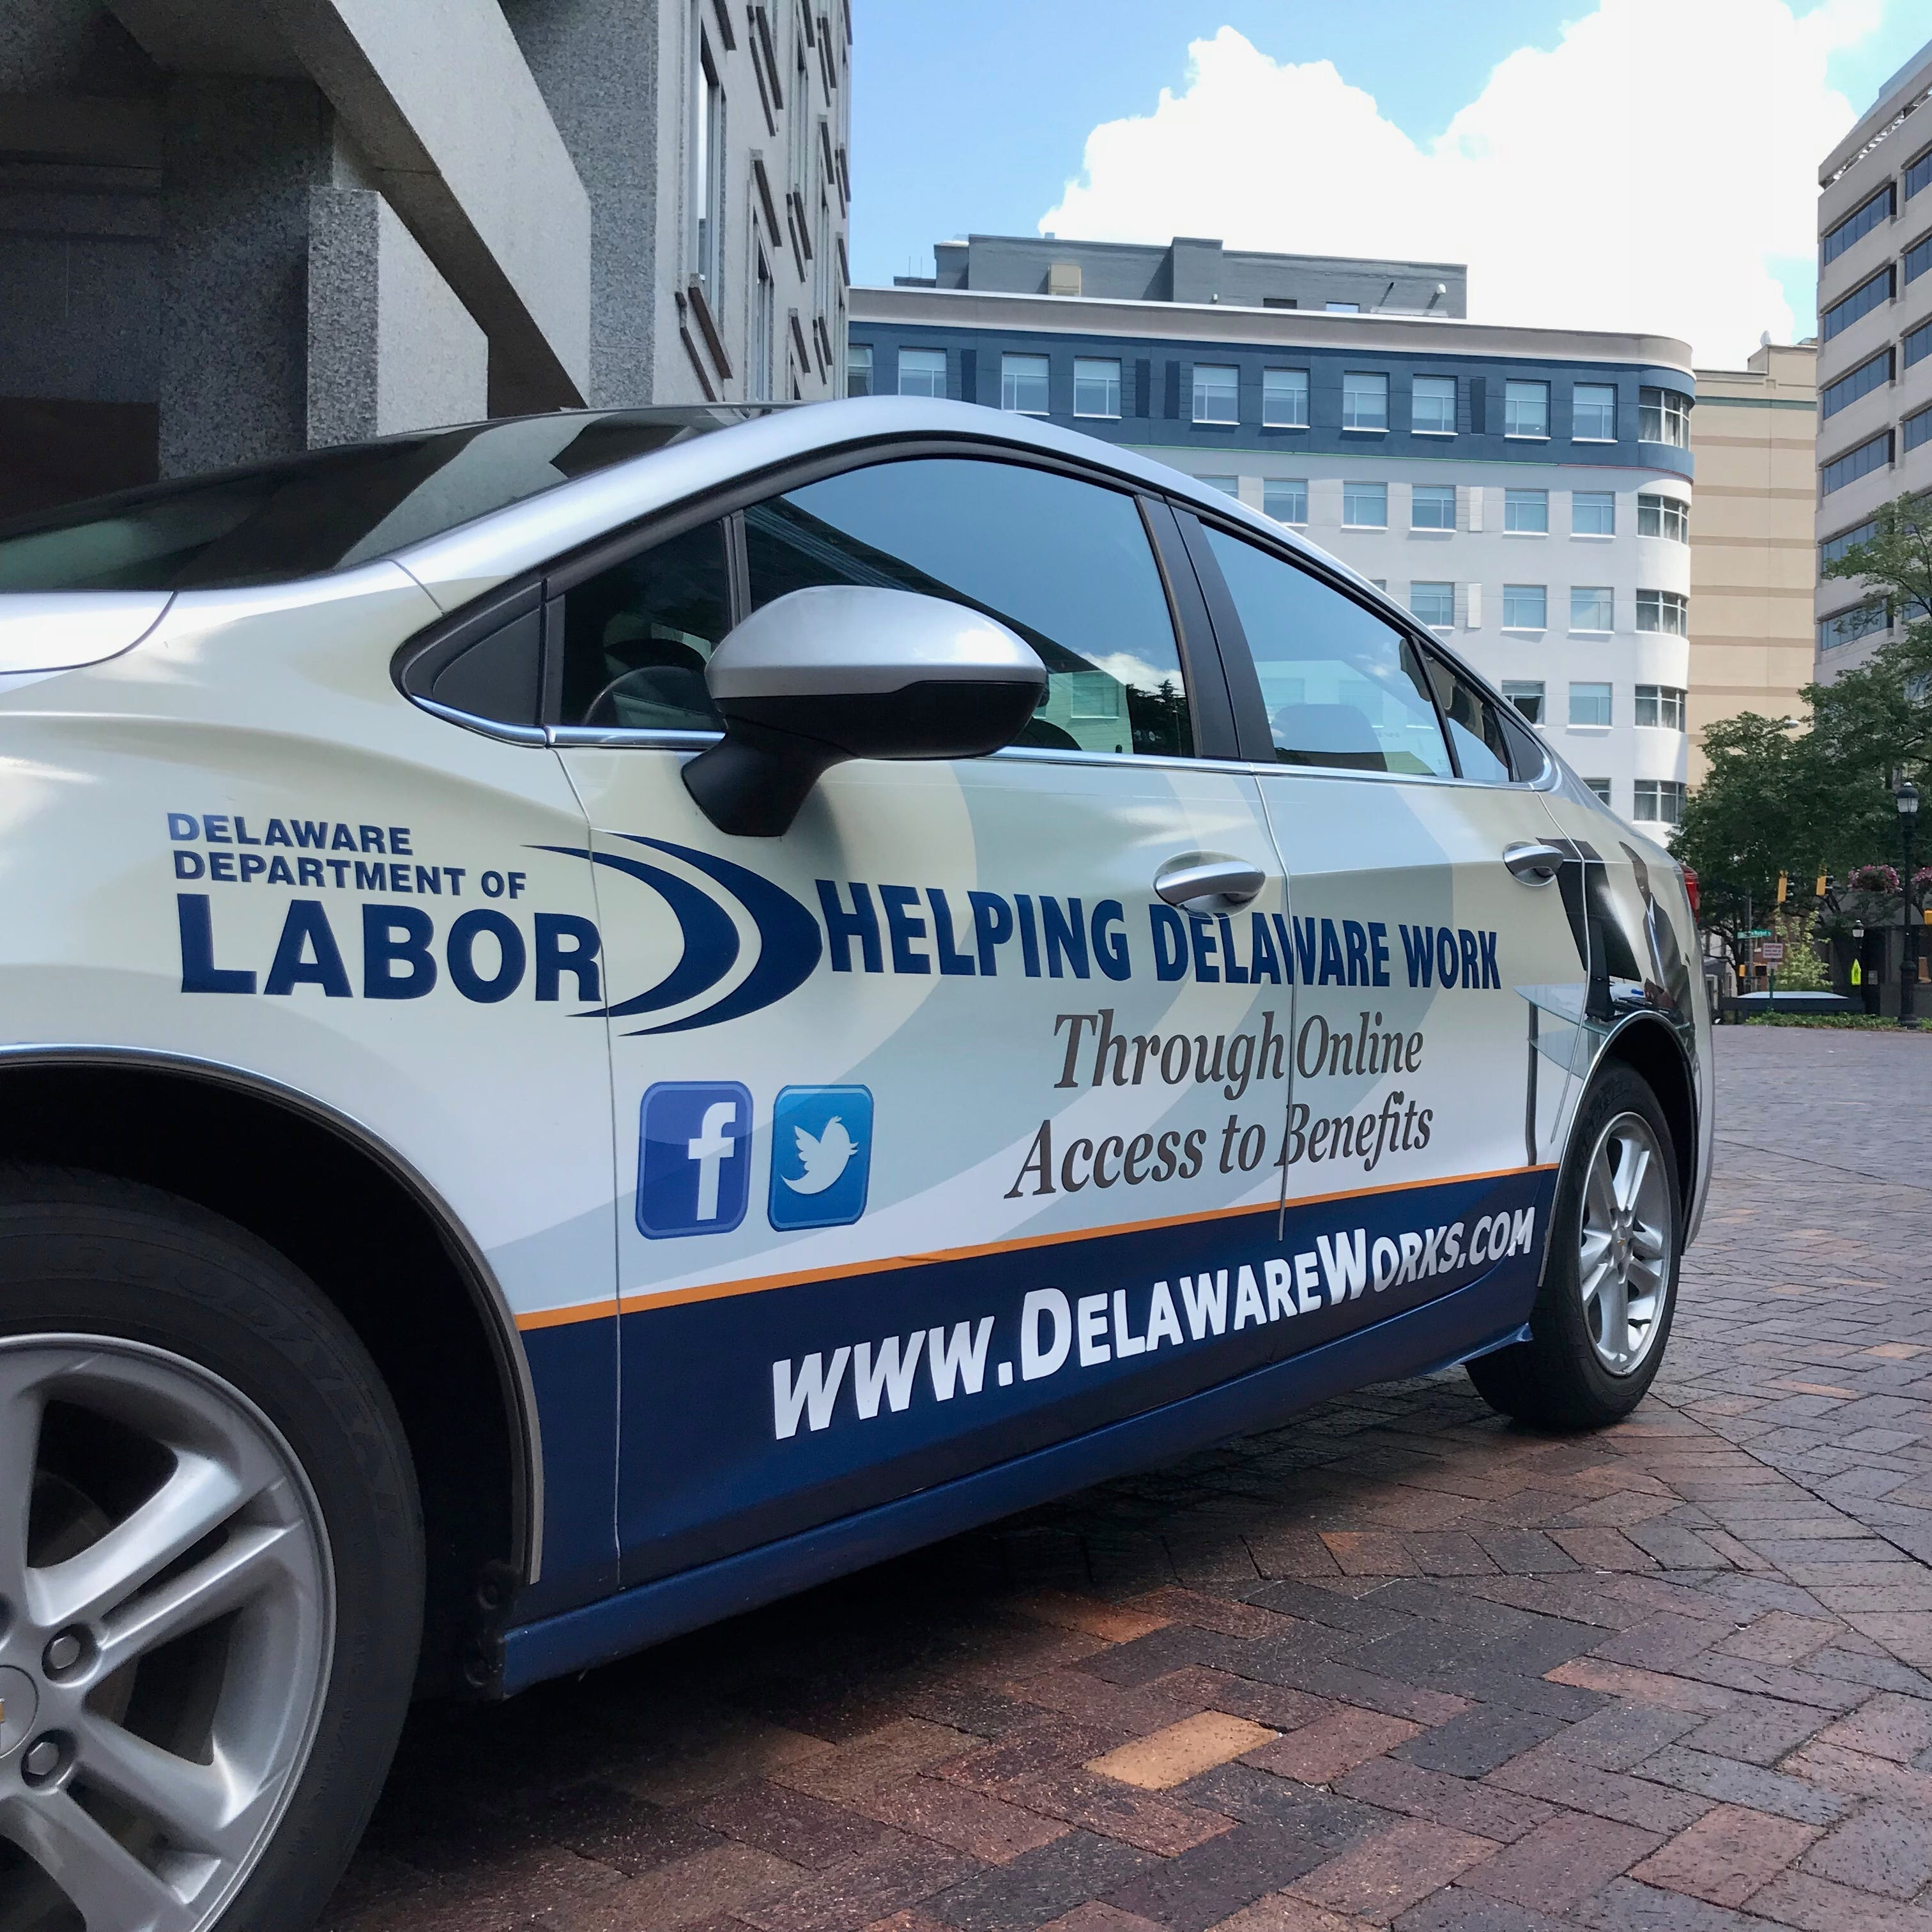 The Department of Labor has partnered with startup Carvertise to spread awareness of the agency's services.